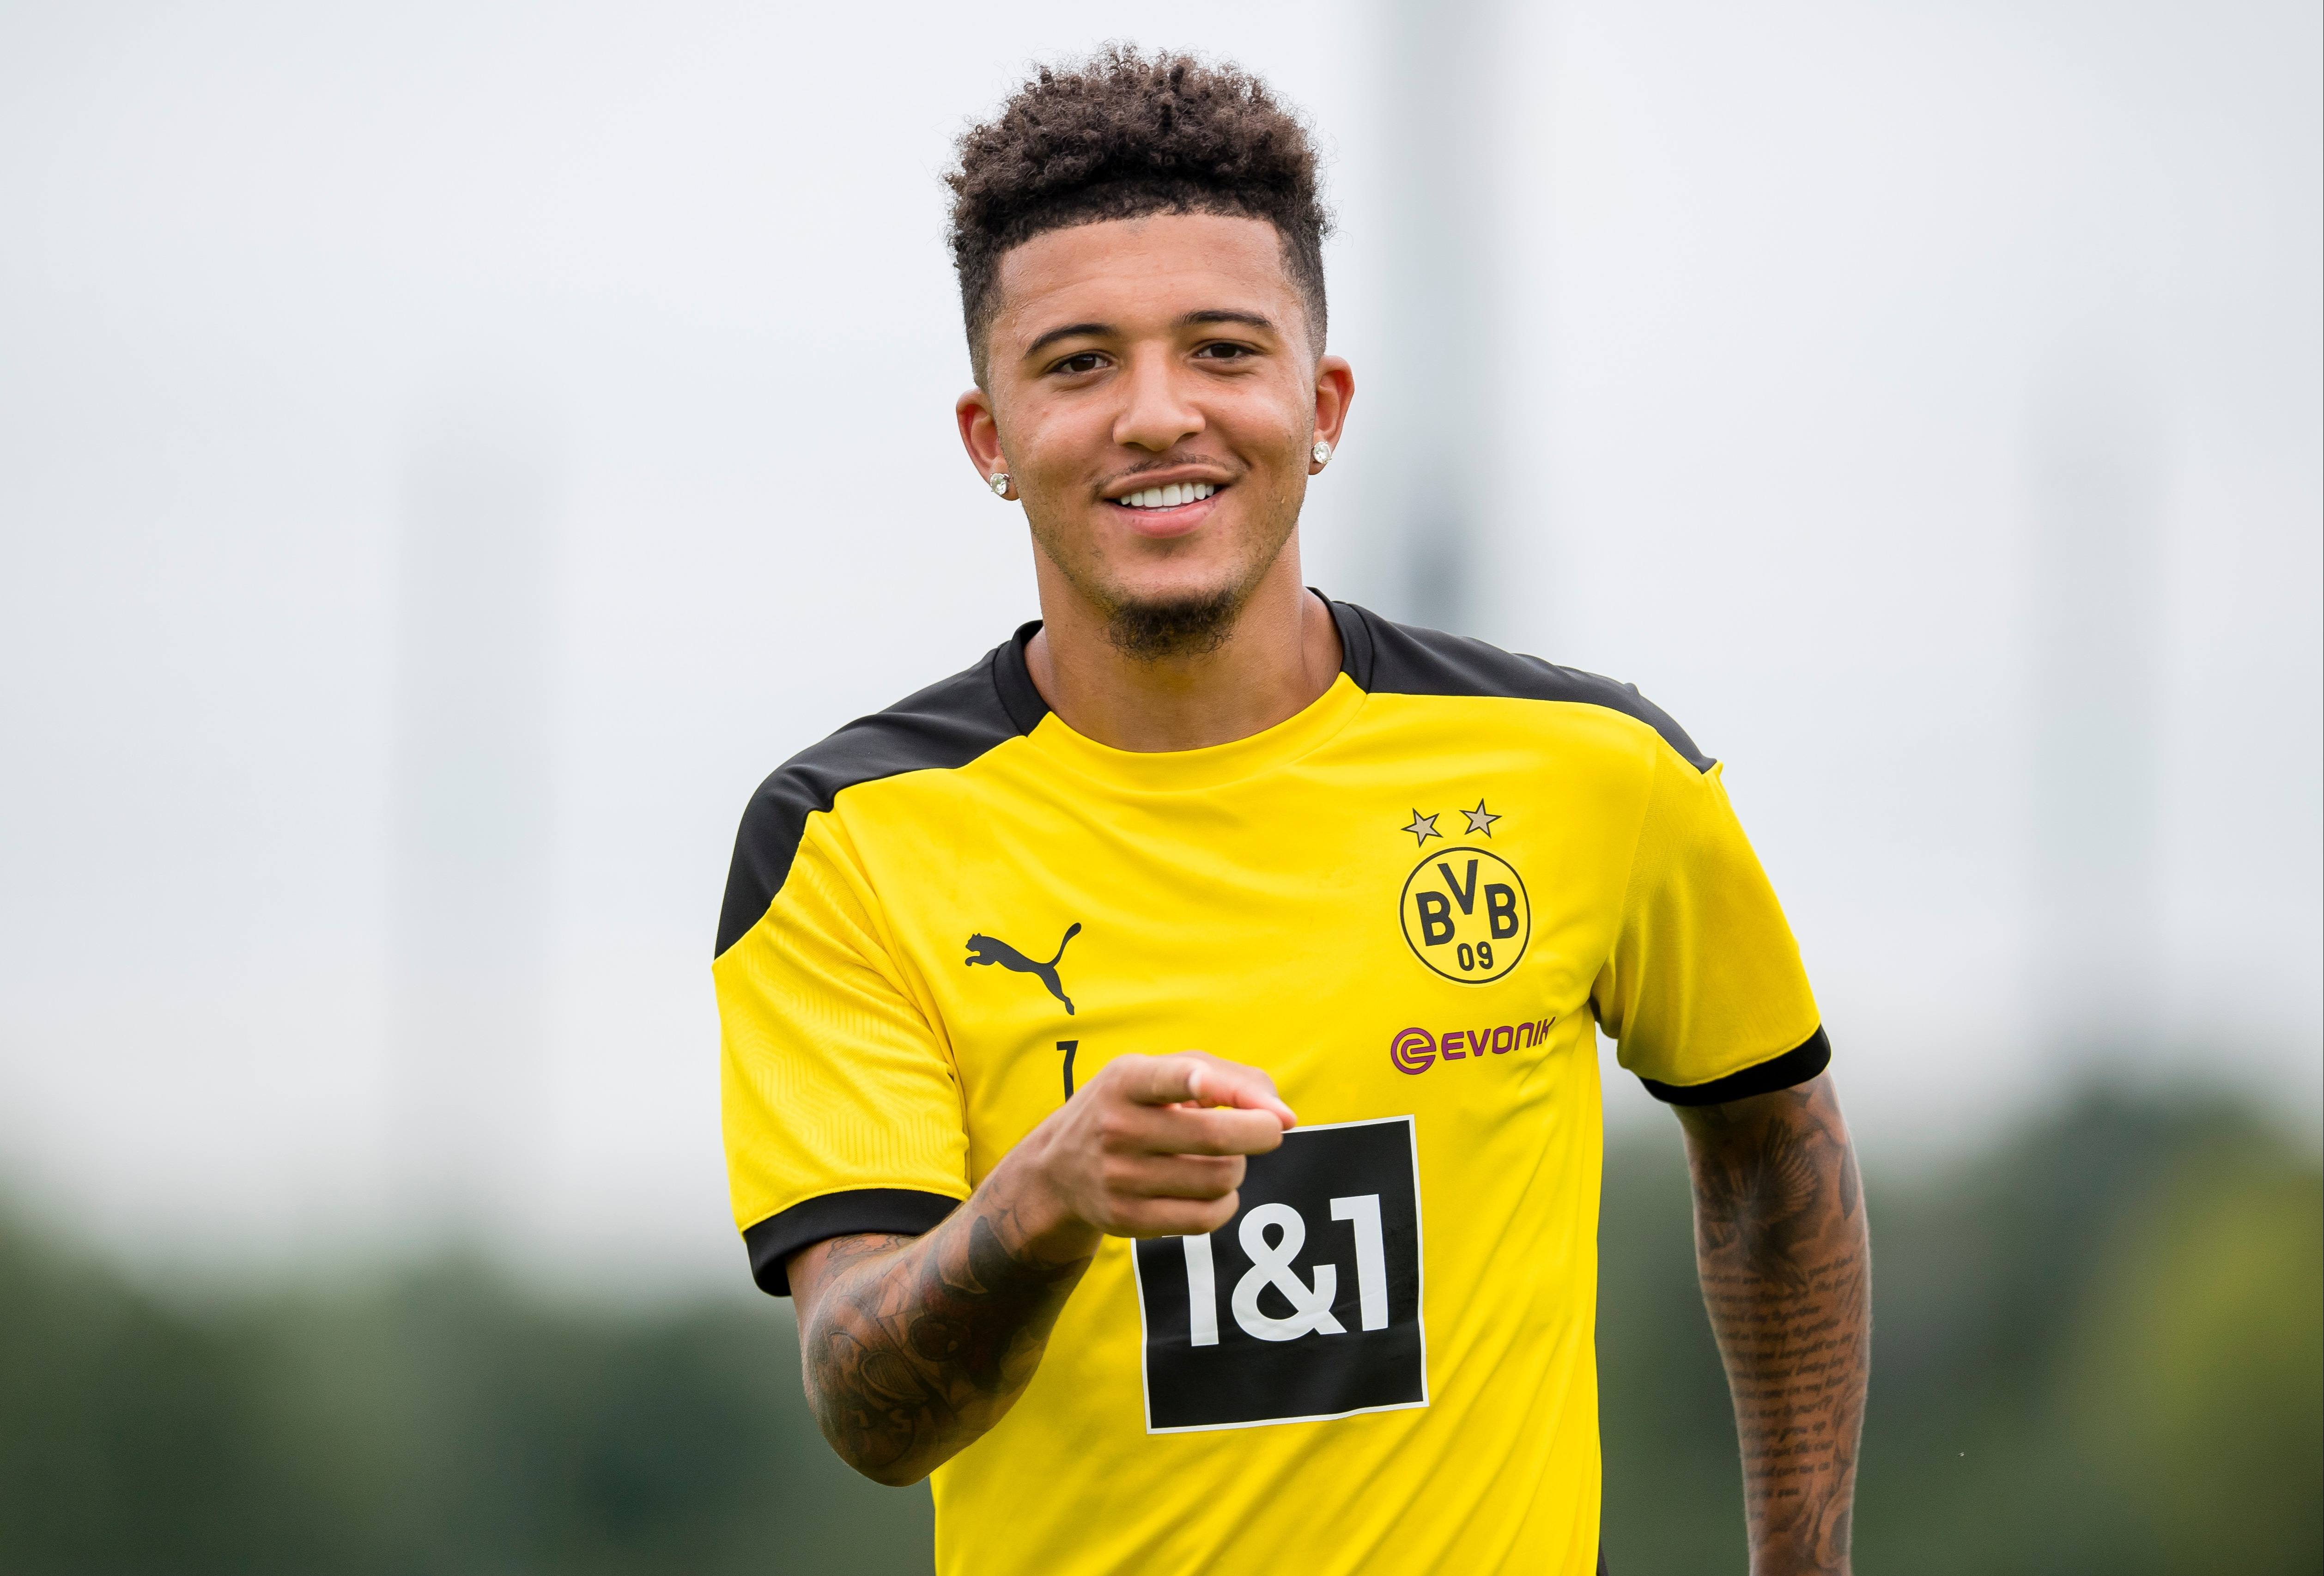 Man Utd given Sancho hope as Dortmund will 'never say player is unsellable' but Woodward told he 'misjudged situation'